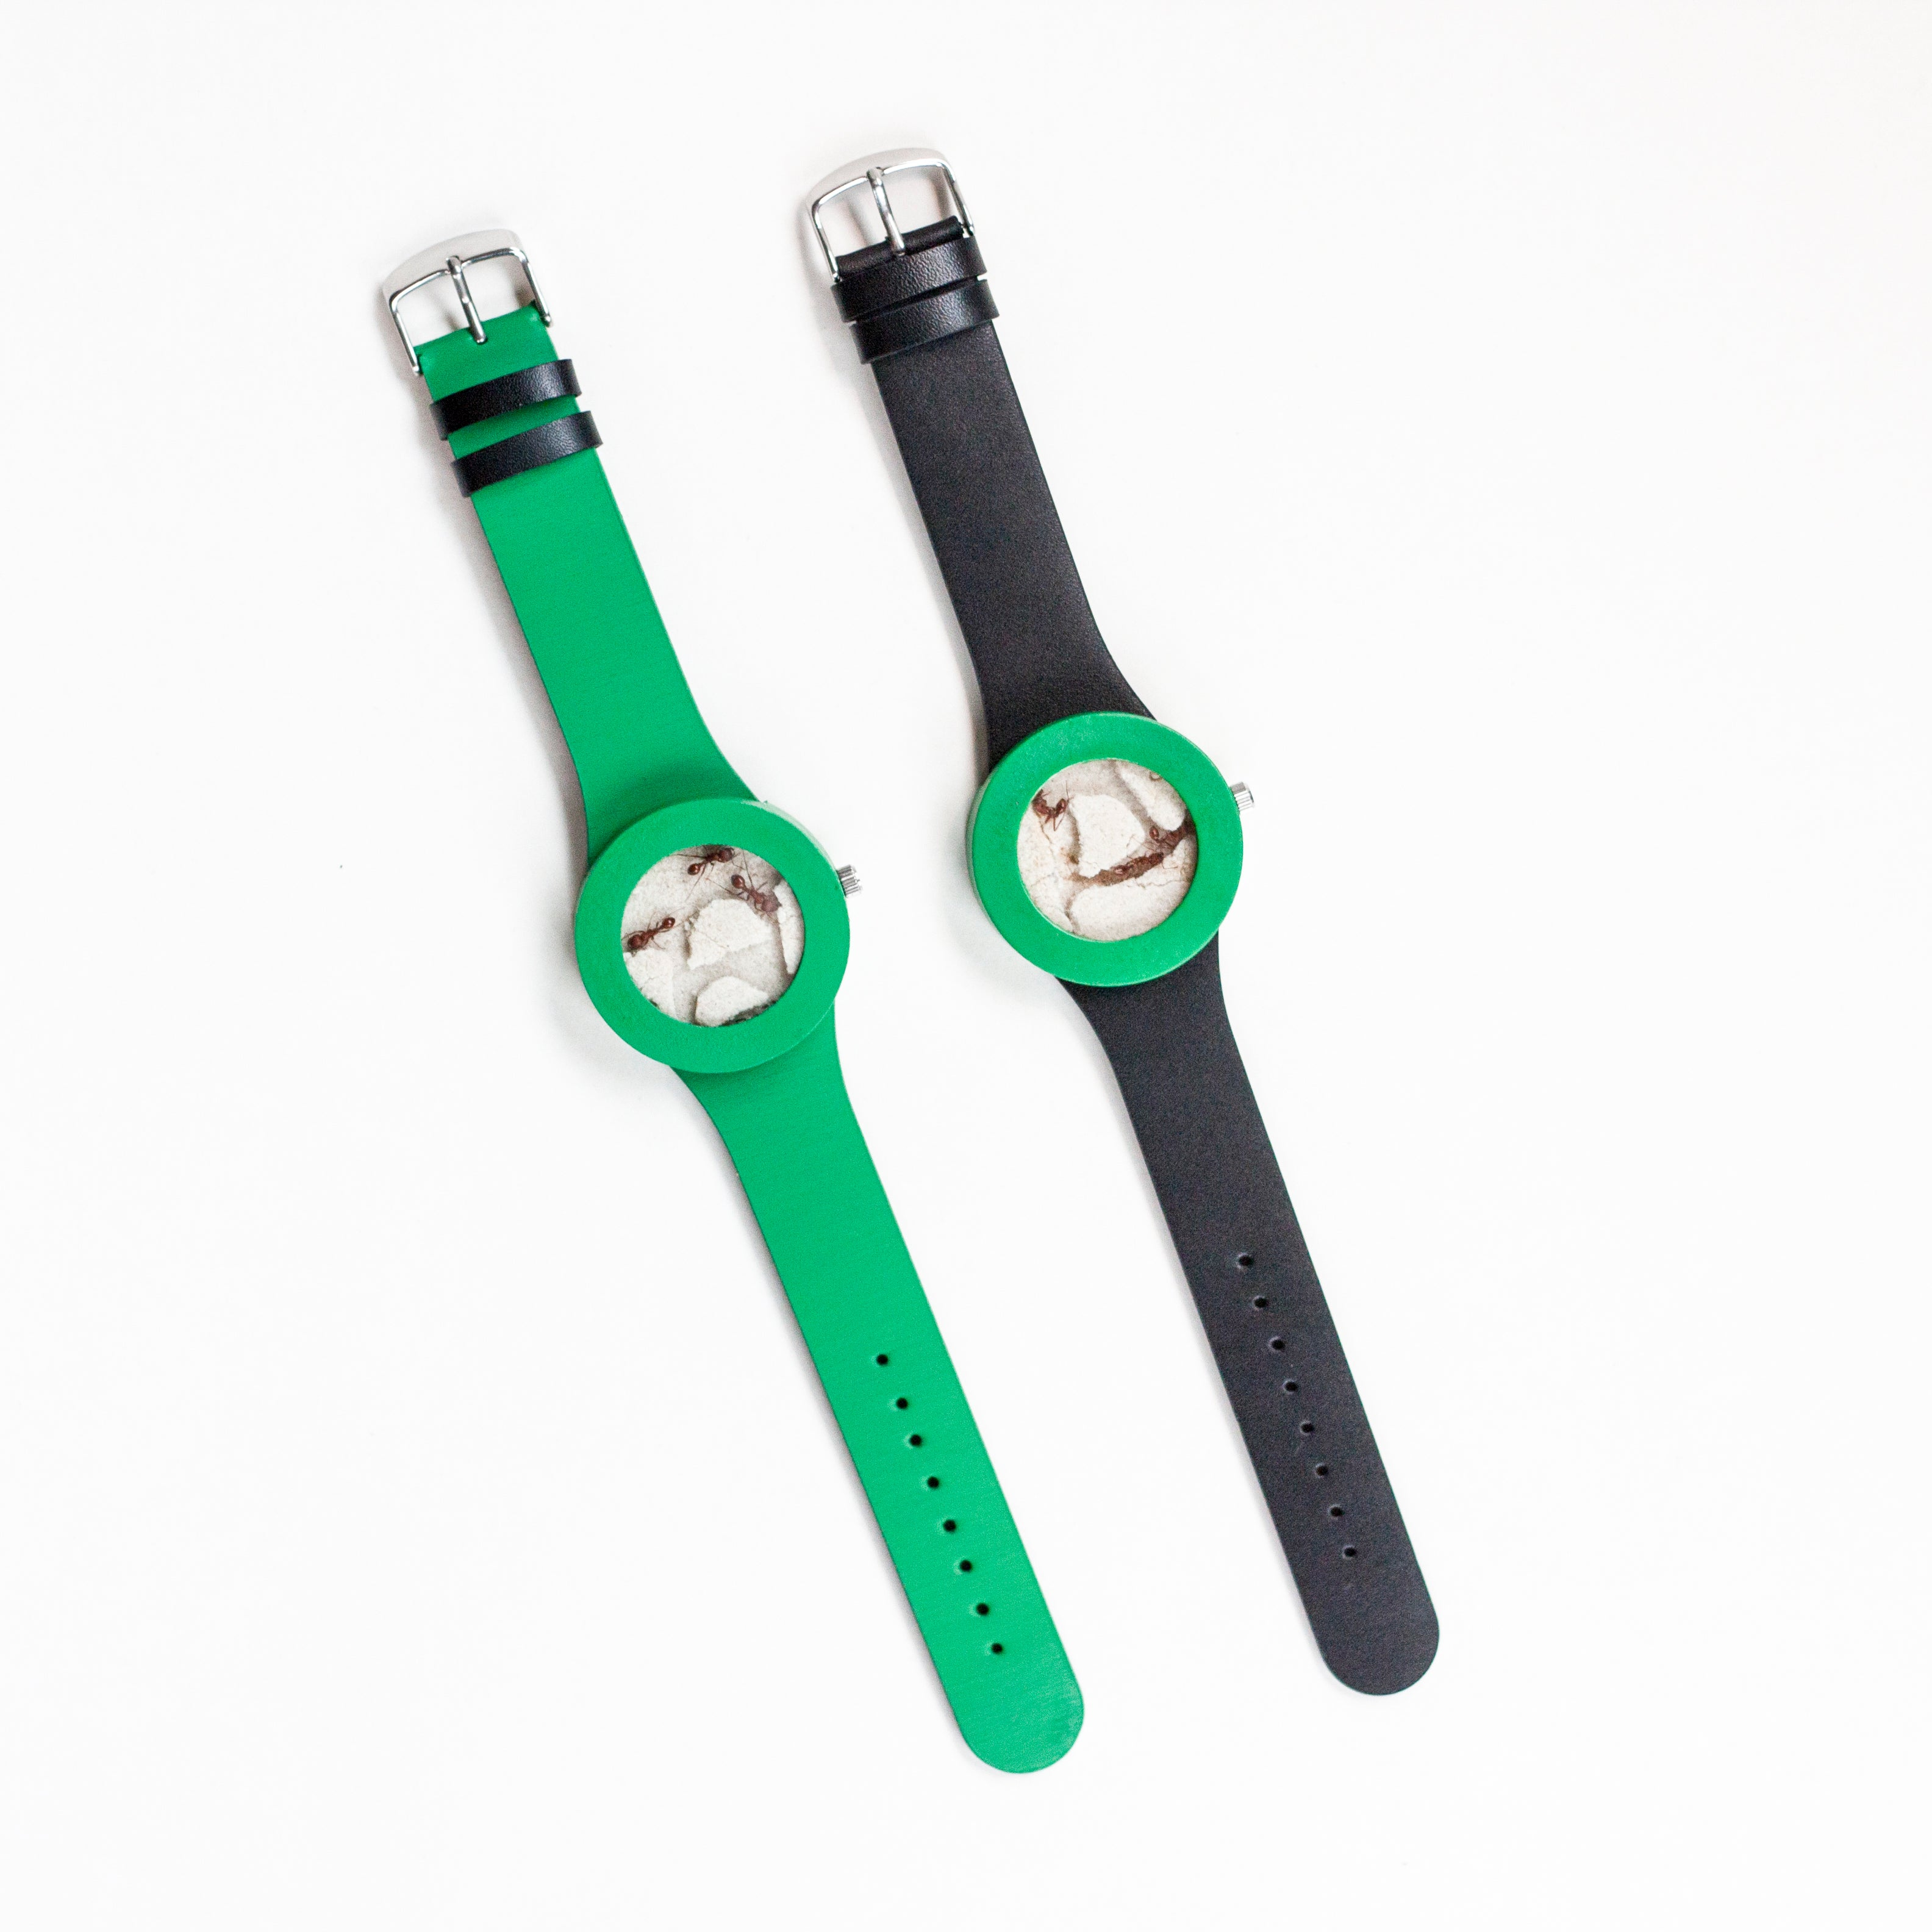 THE ANT WATCH – Analog Watch Co